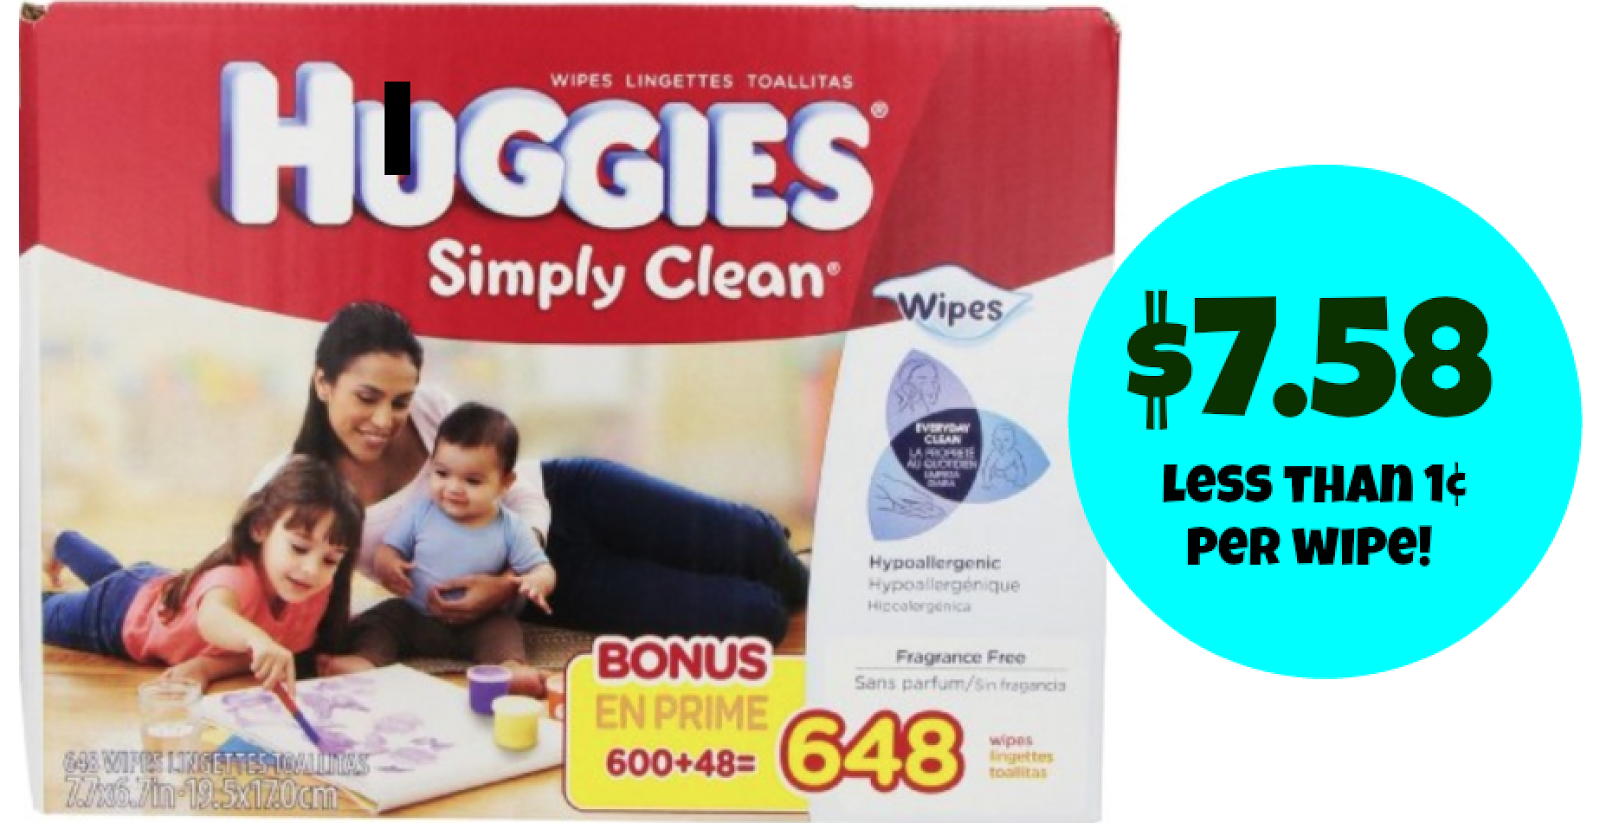 http://www.thebinderladies.com/2015/03/amazon-huggies-simply-clean-baby-wipes.html#.VPc1K0LduyM